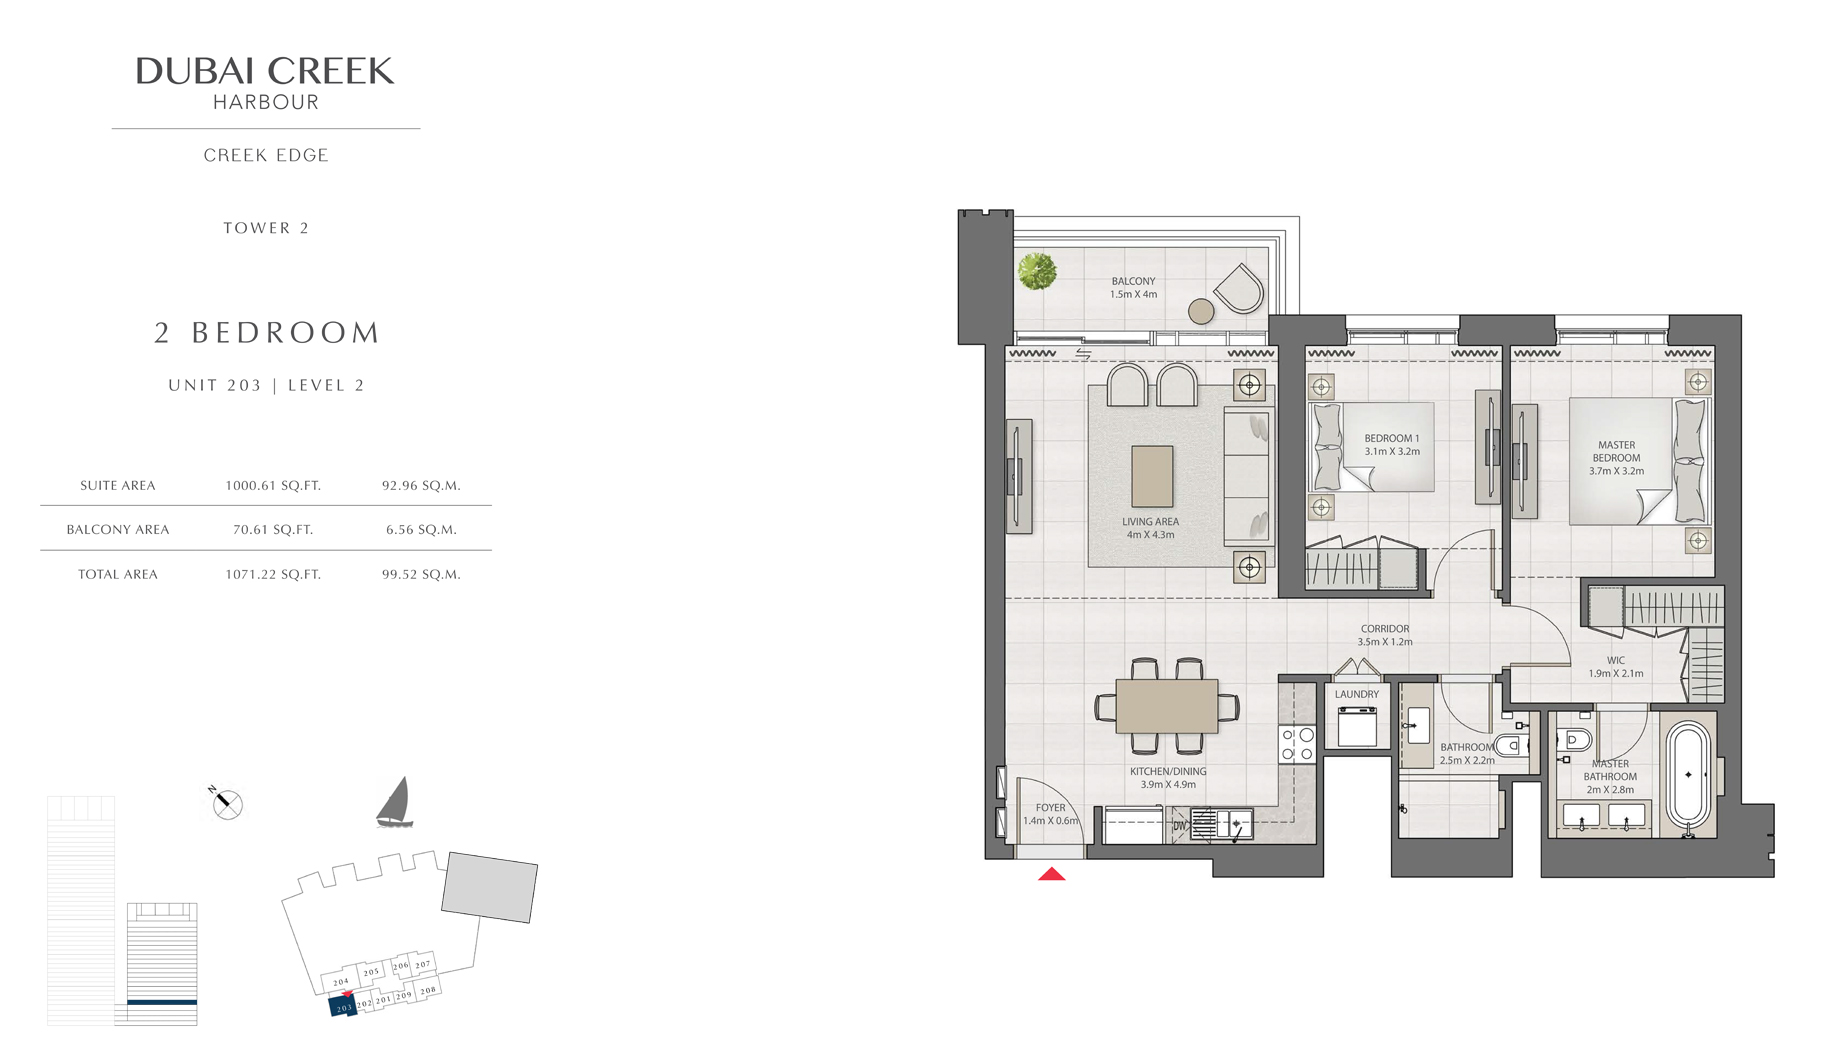 2 Bedroom Tower 1 Unit 203 Level 2 Size 1071 sq.ft